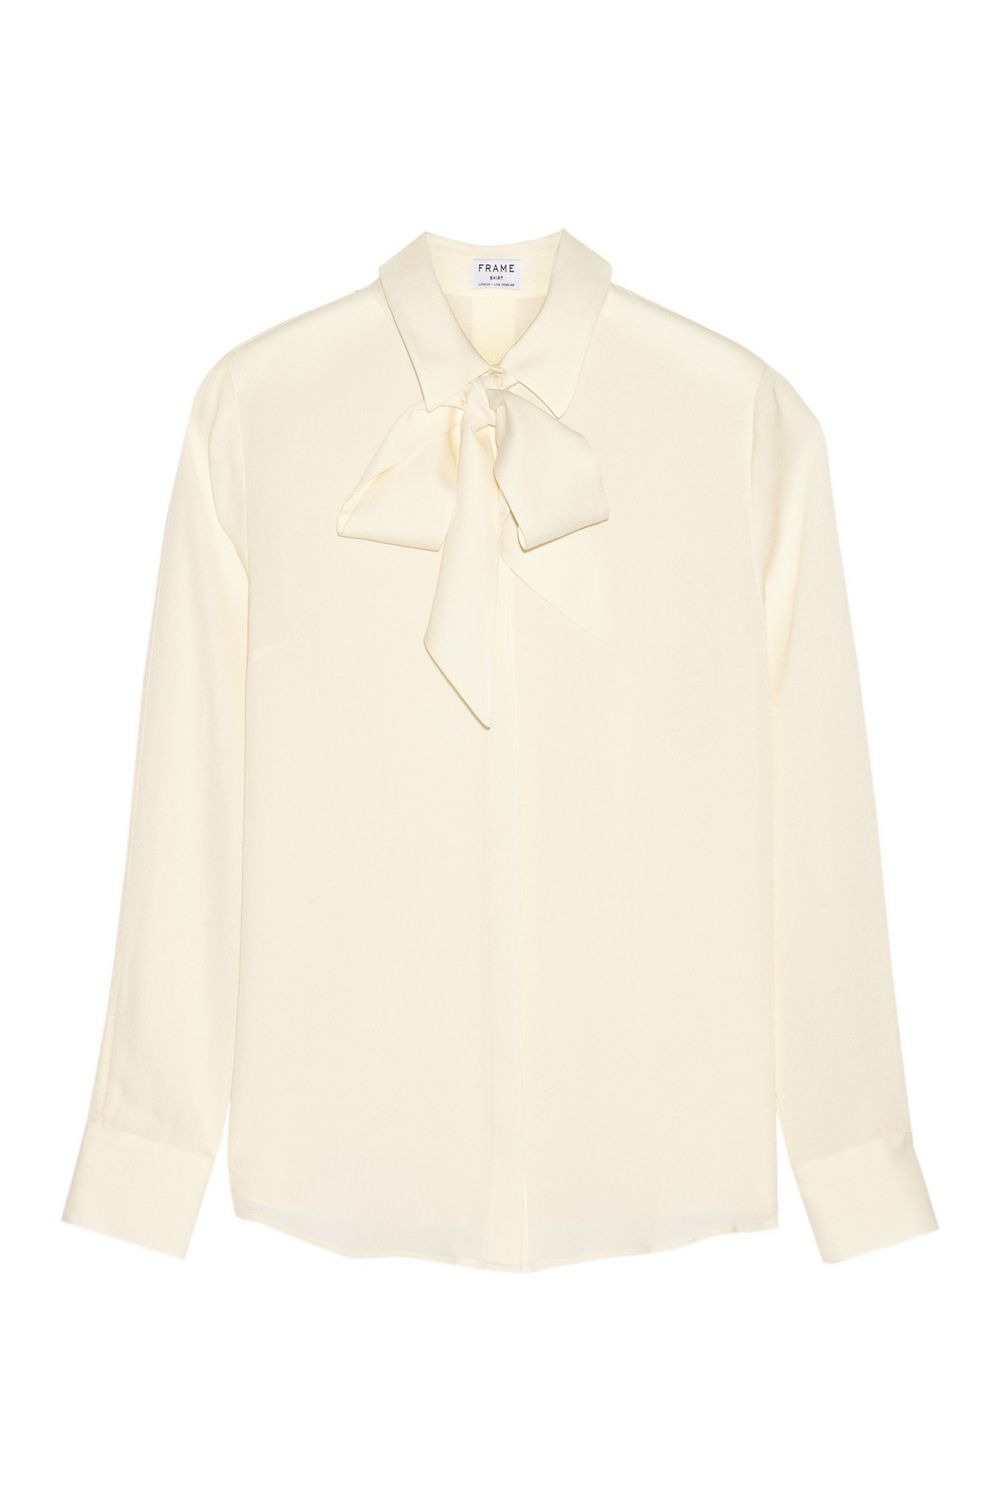 """<p>You'll feel like a million bucks when you slip it on (<em>so </em>soft) and look totally polished.</p><p>Frame Denim Le Bow Silk-Georgette Blouse, $270; <a href=""""http://www.net-a-porter.com/product/609704/Frame_Denim/le-bow-silk-georgette-blouse"""" target=""""_blank"""">net-a-porter.com</a>.</p><p><br></p>"""